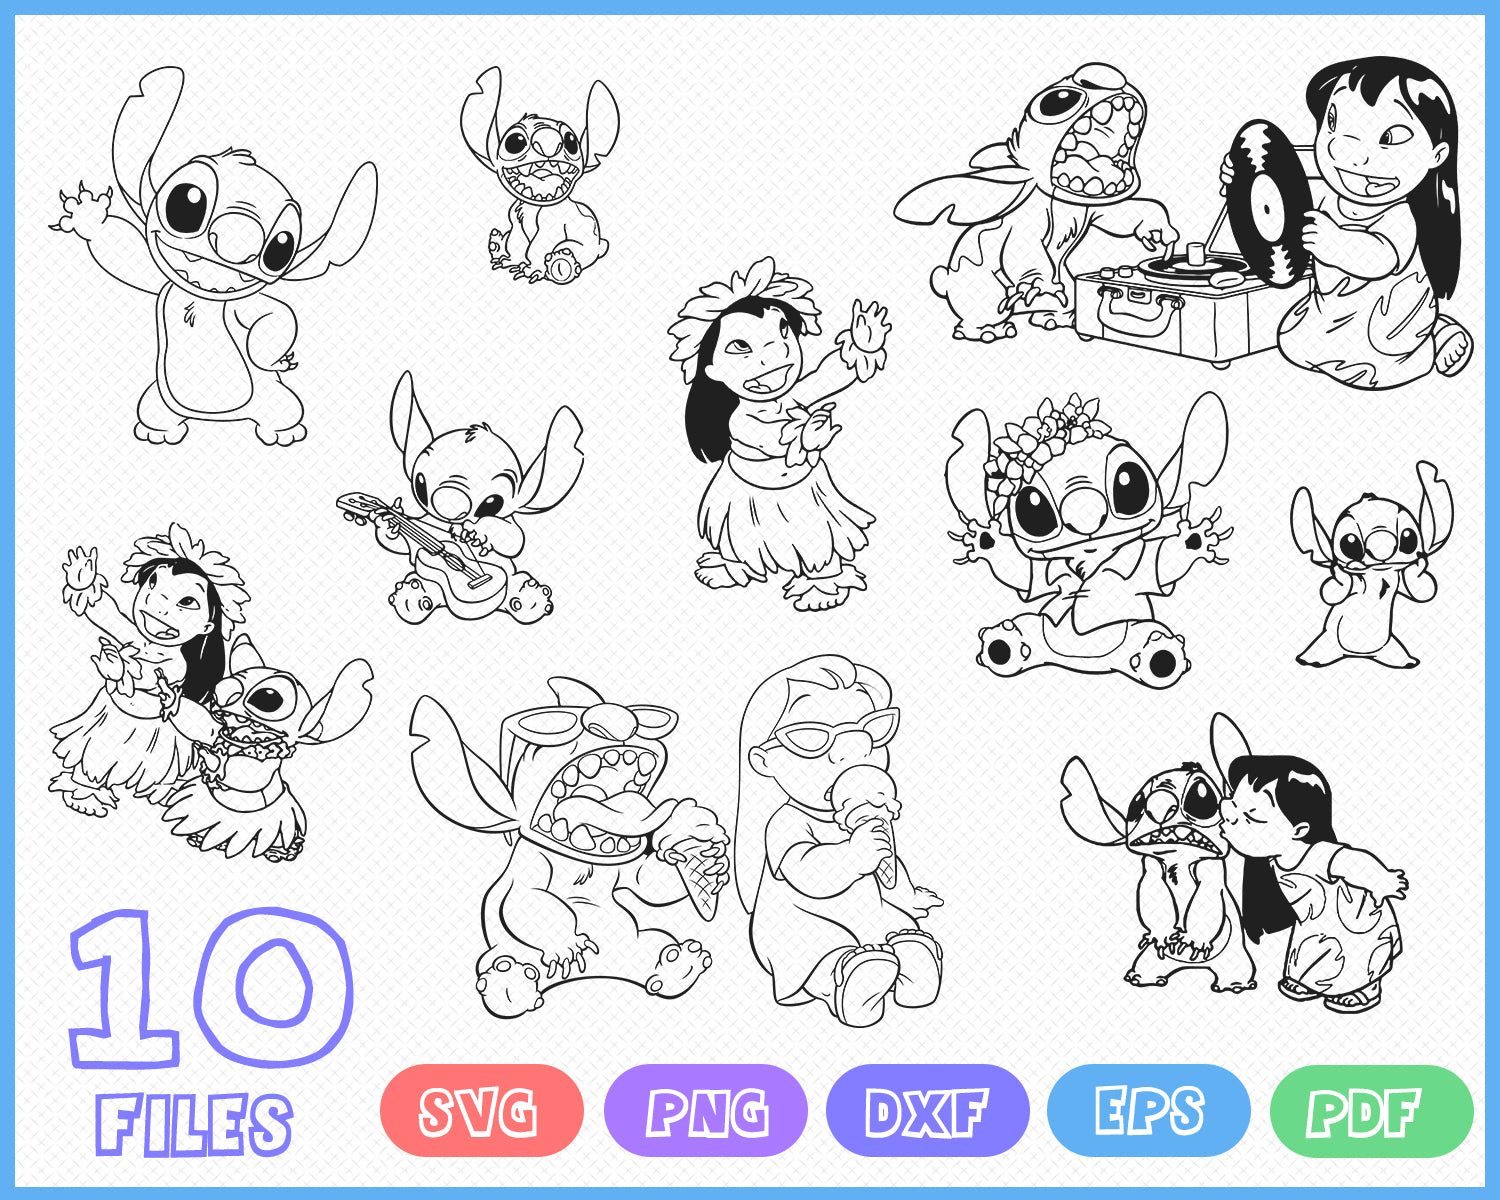 experiment 626 Digital File Only DXF PNG jpg starbucks cup decal alien cricut Stitch SVG bundle silhouette Lilo and stitch stitch